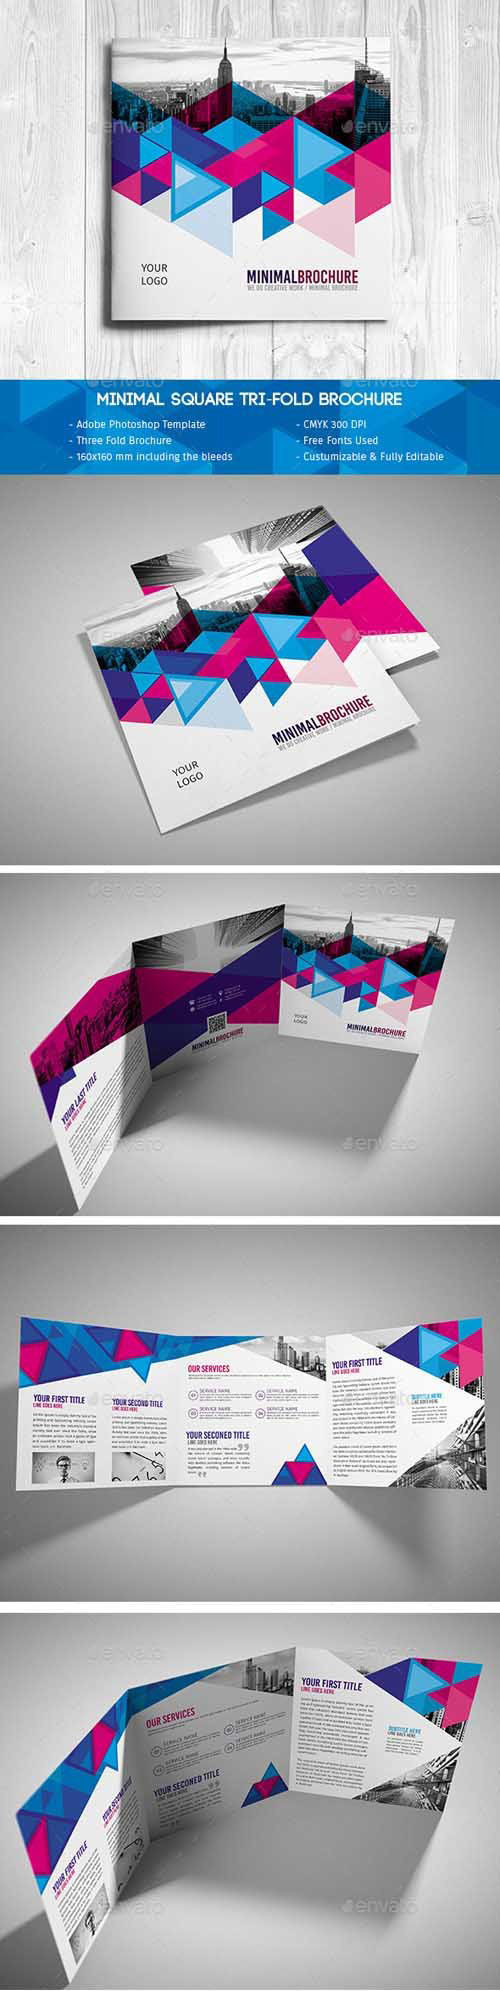 Minimal Square TriFold Brochure PSD Template PSD Templates Free - Tri fold brochure photoshop template